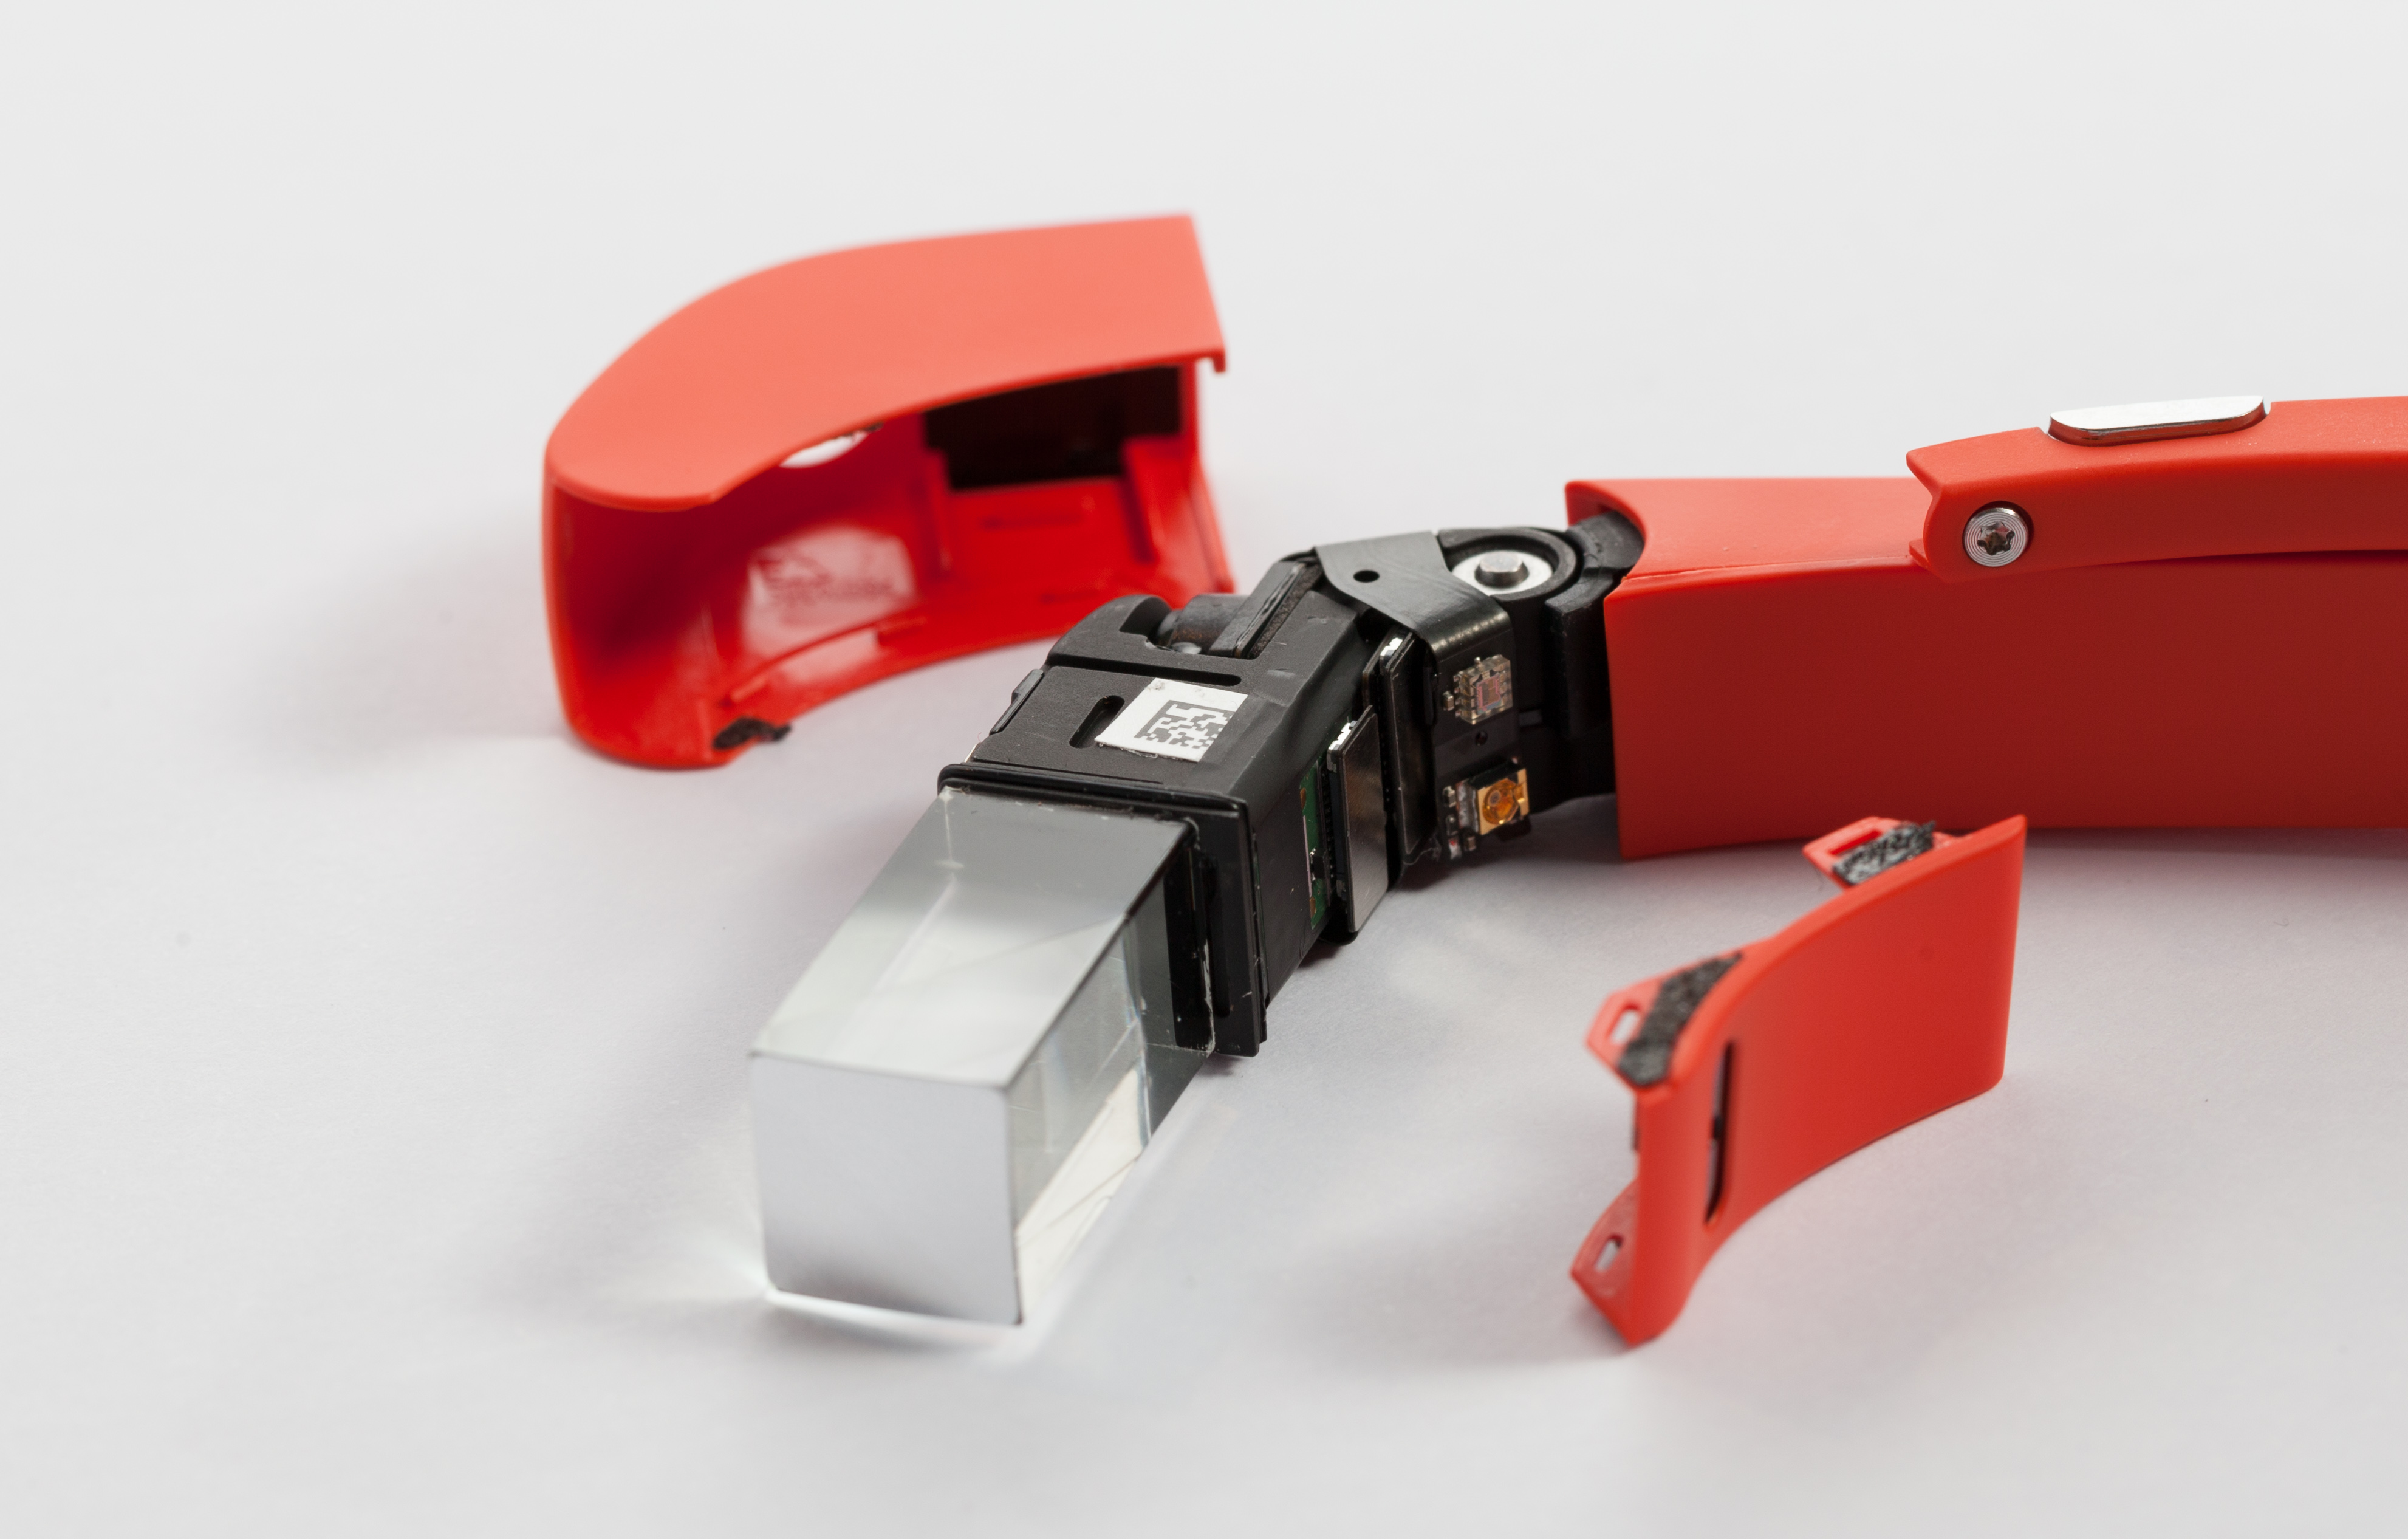 http://www.catwig.com/google-glass-teardown/teardown/teardown-display-case-exploded-2.jpg